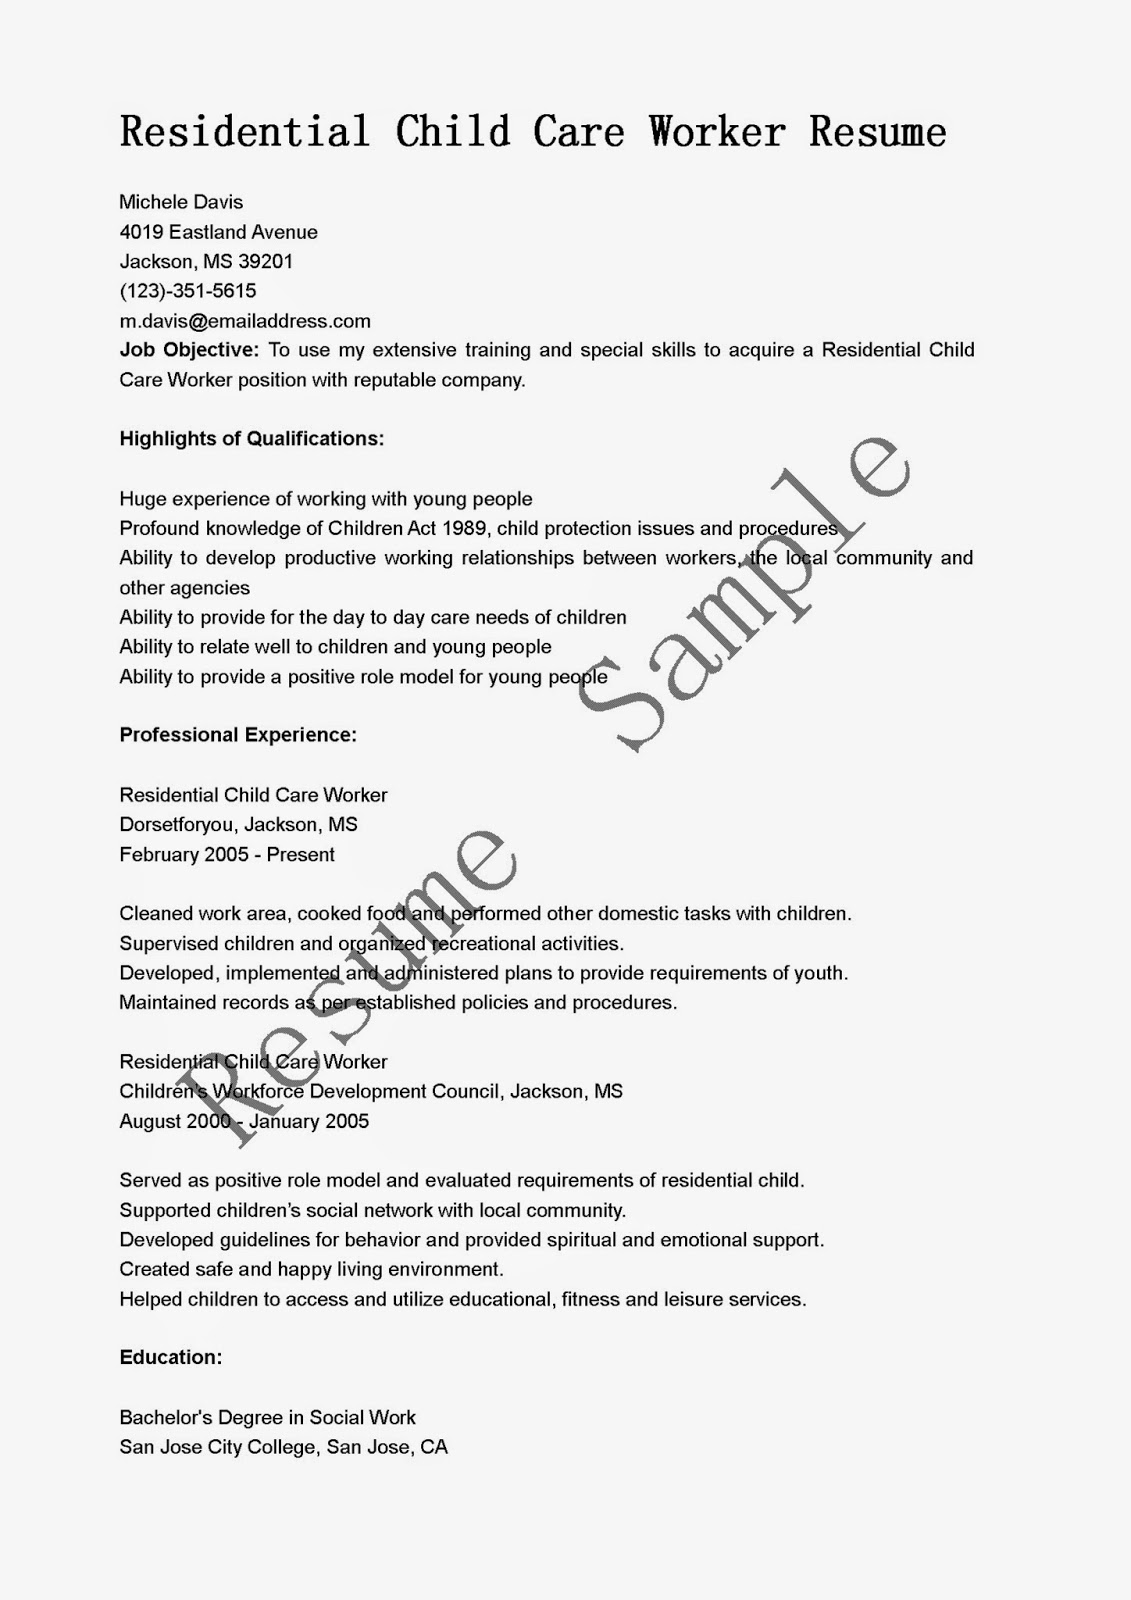 sample resume for personal care worker - resume samples residential child care worker resume sample